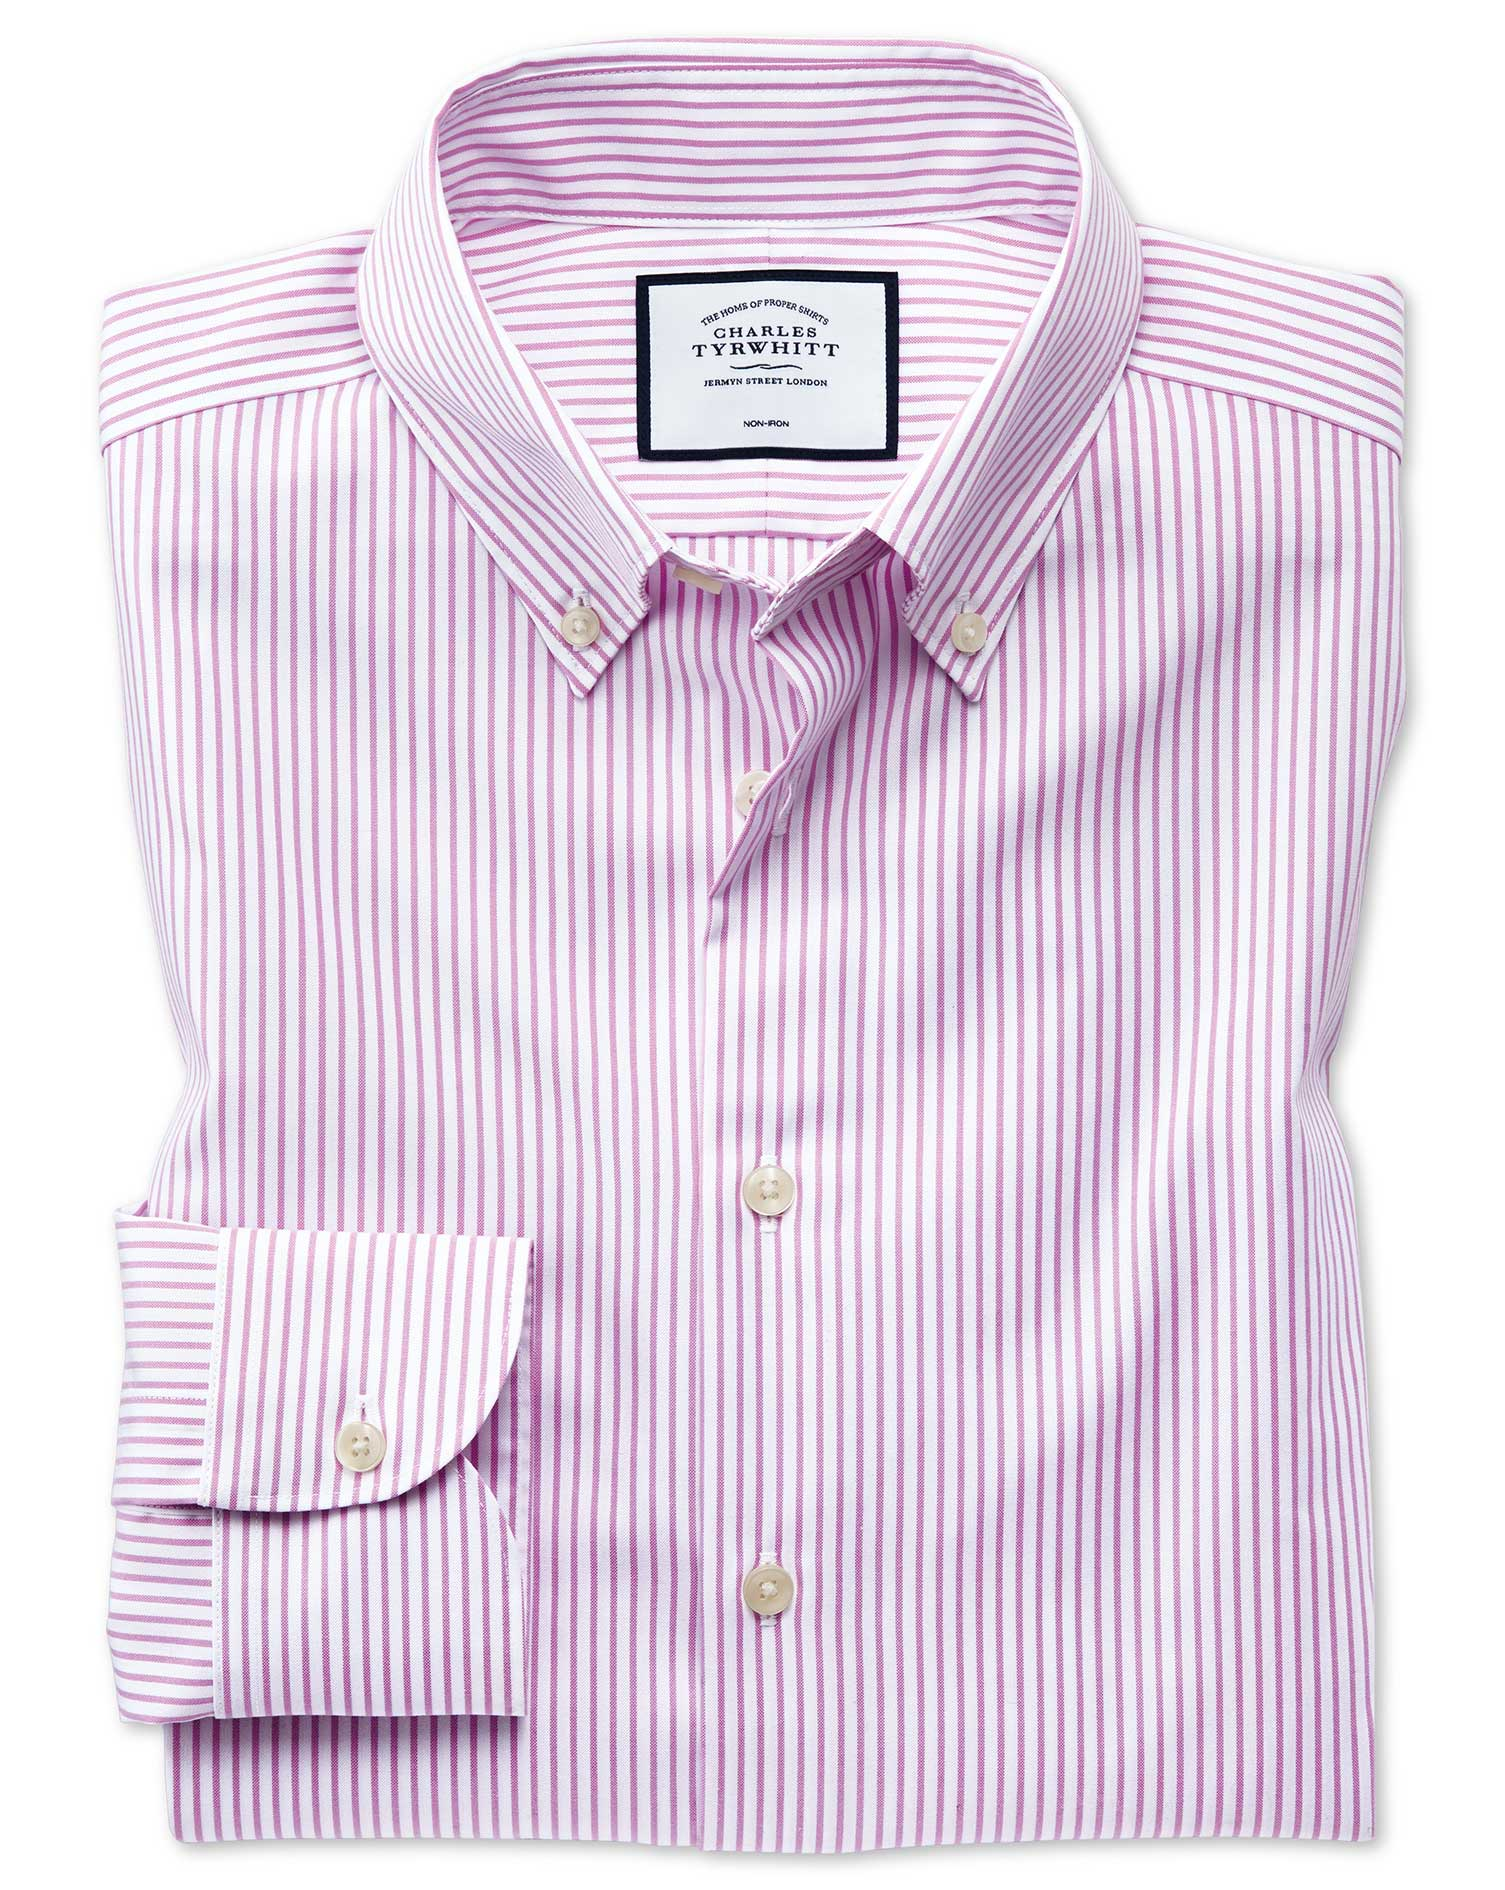 Slim Fit Business Casual Non-Iron Button-Down Pink Stripe Cotton Formal Shirt Single Cuff Size 15/32